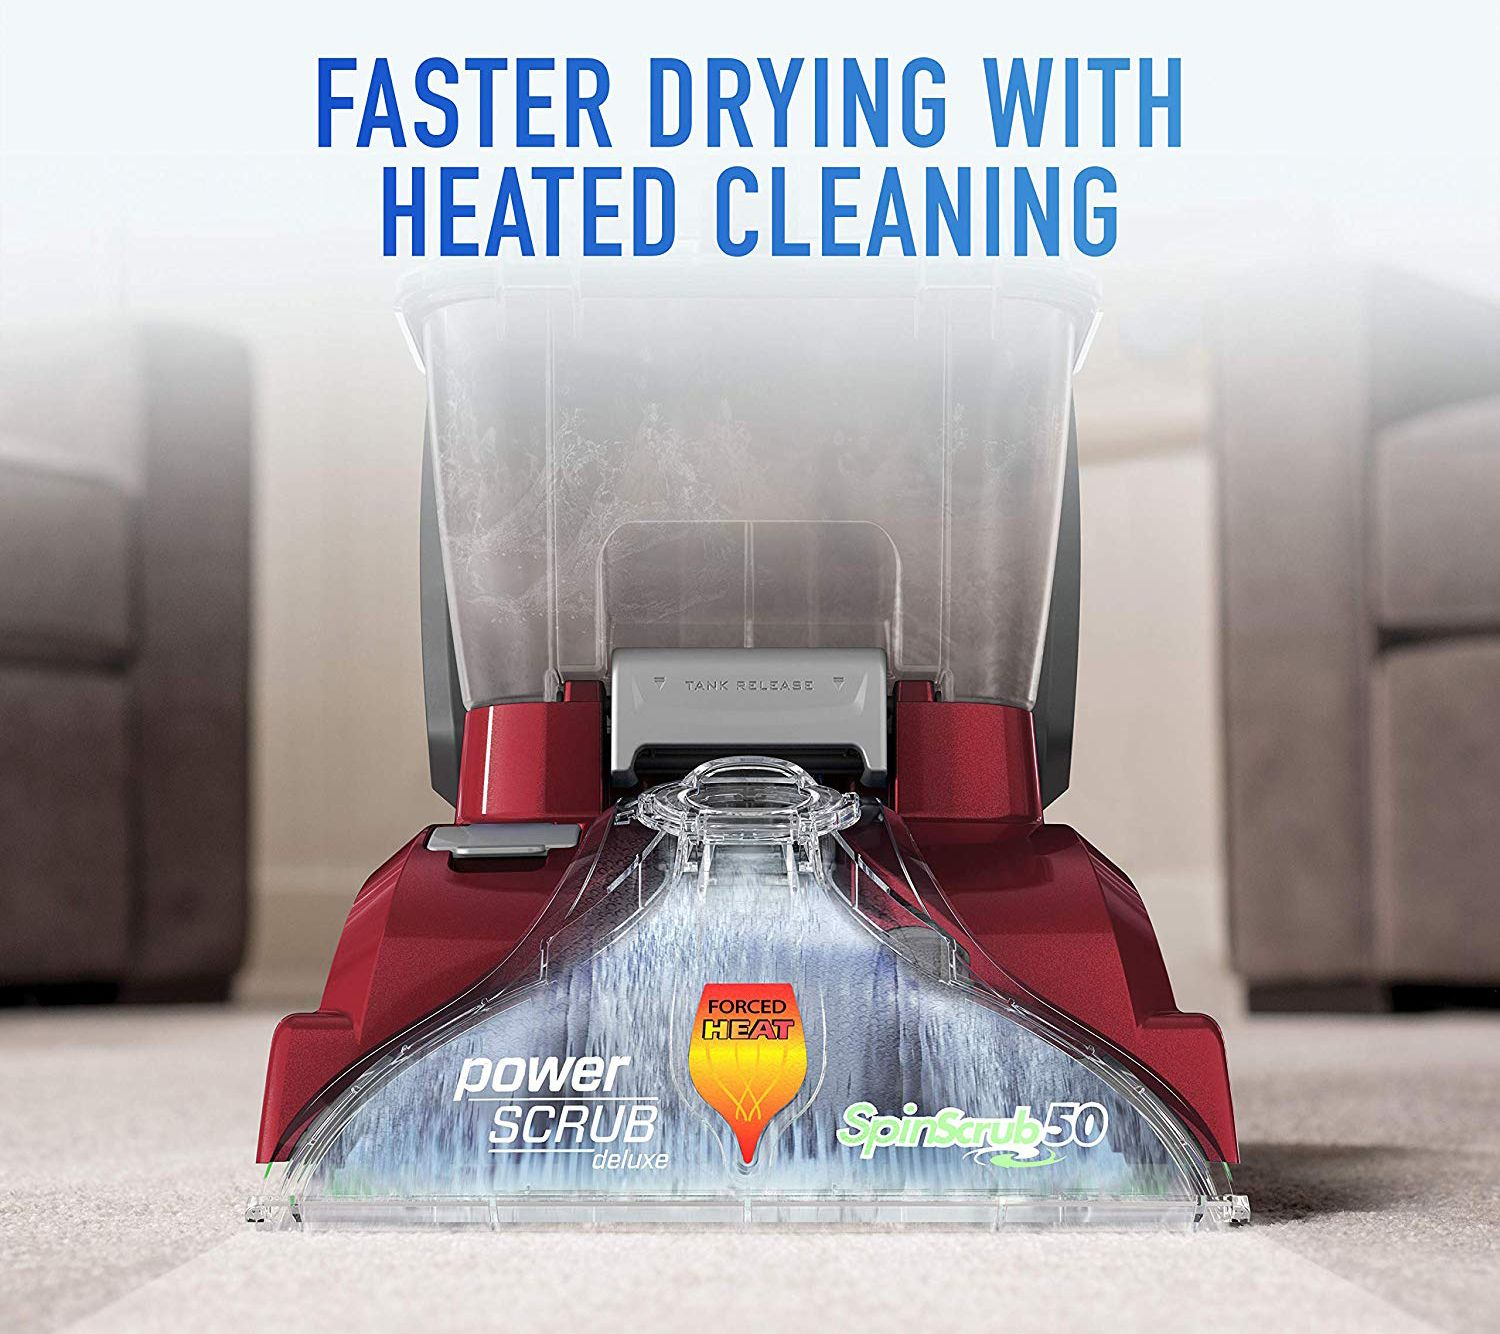 Hoover Fh50150nc Power Scrub Deluxe Carpet Washer Qvc Com